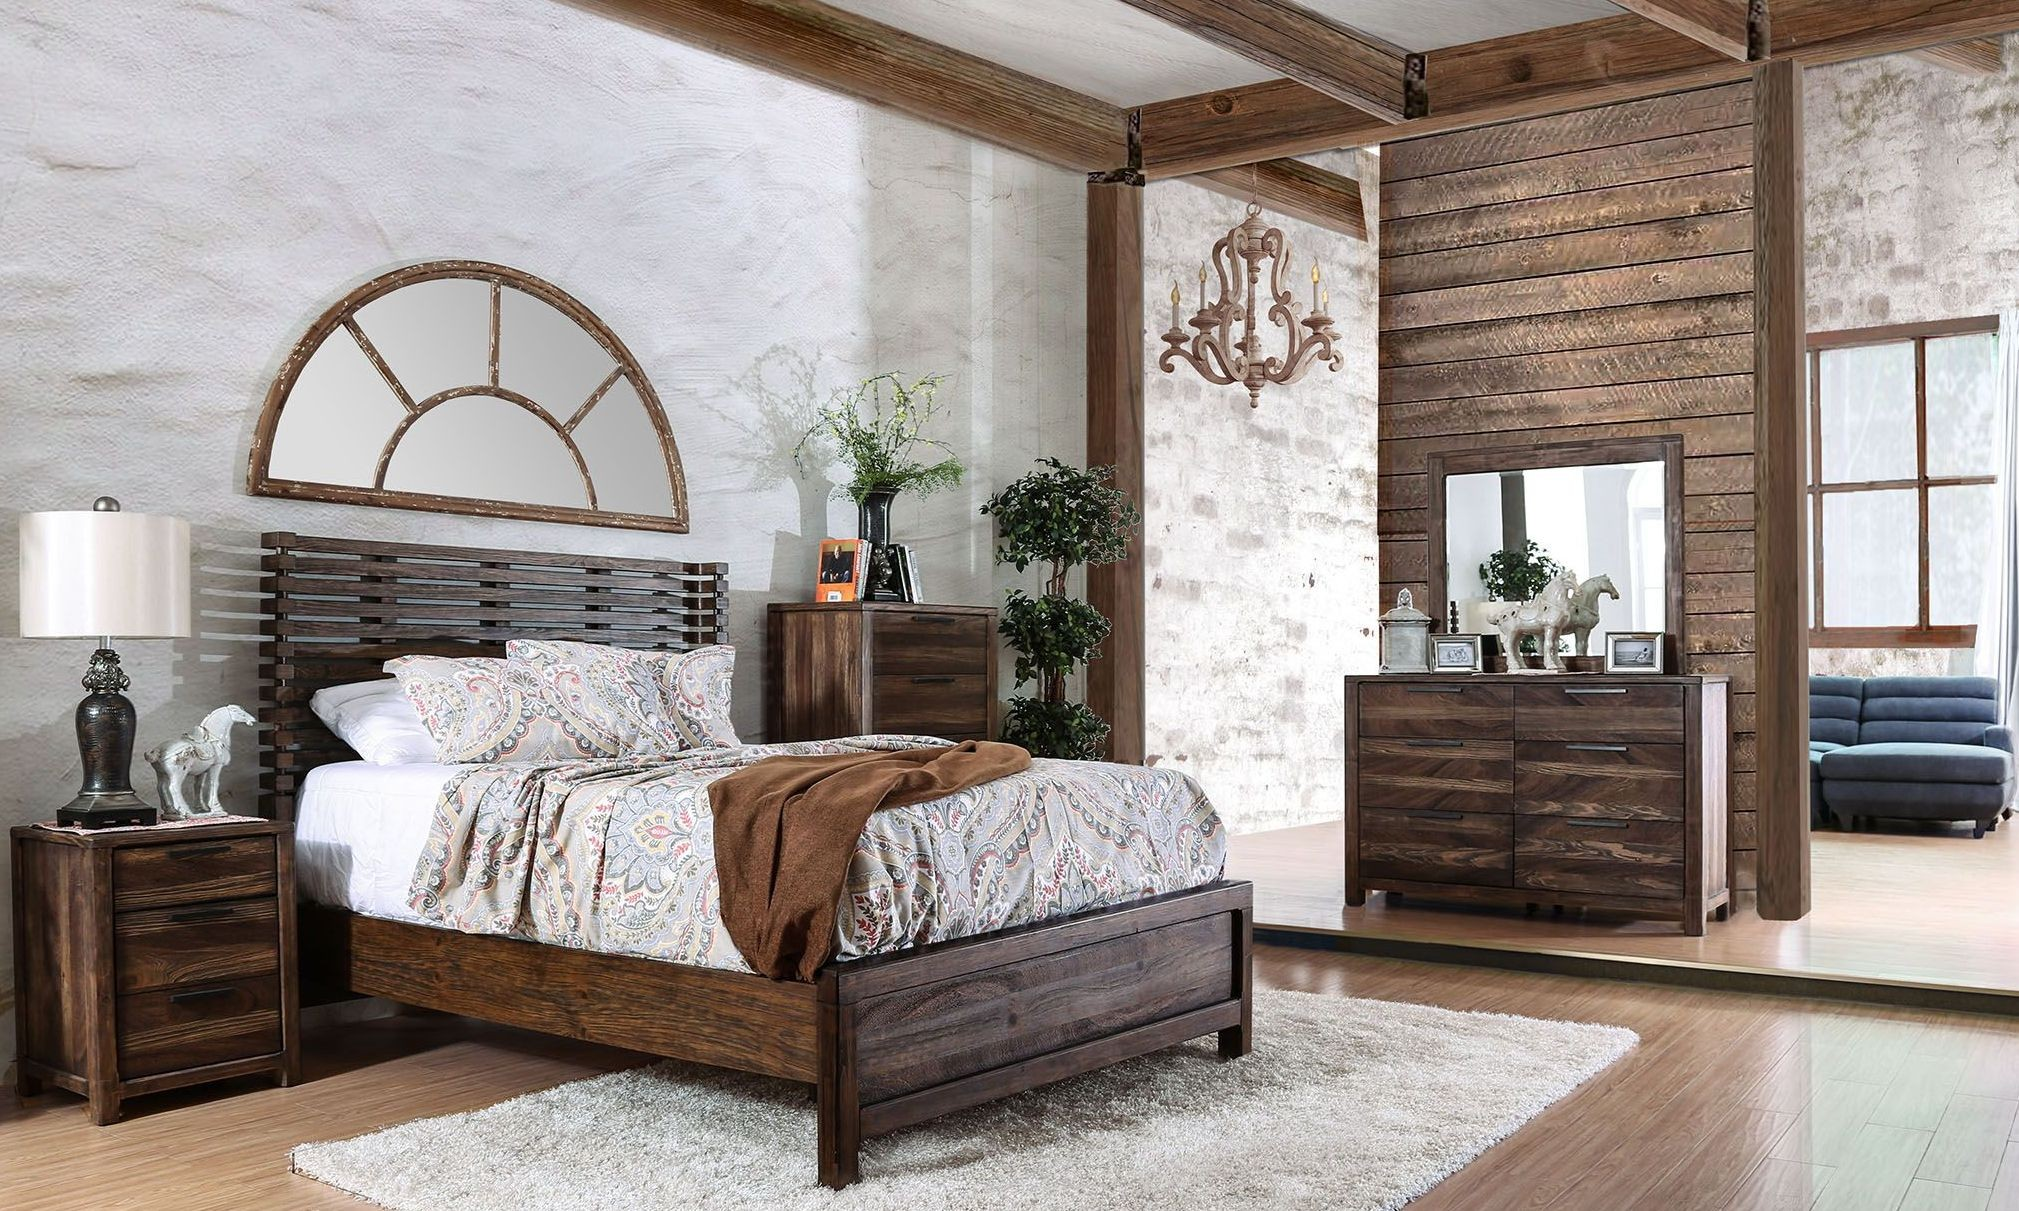 Hankinson rustic natural tone panel bedroom set from